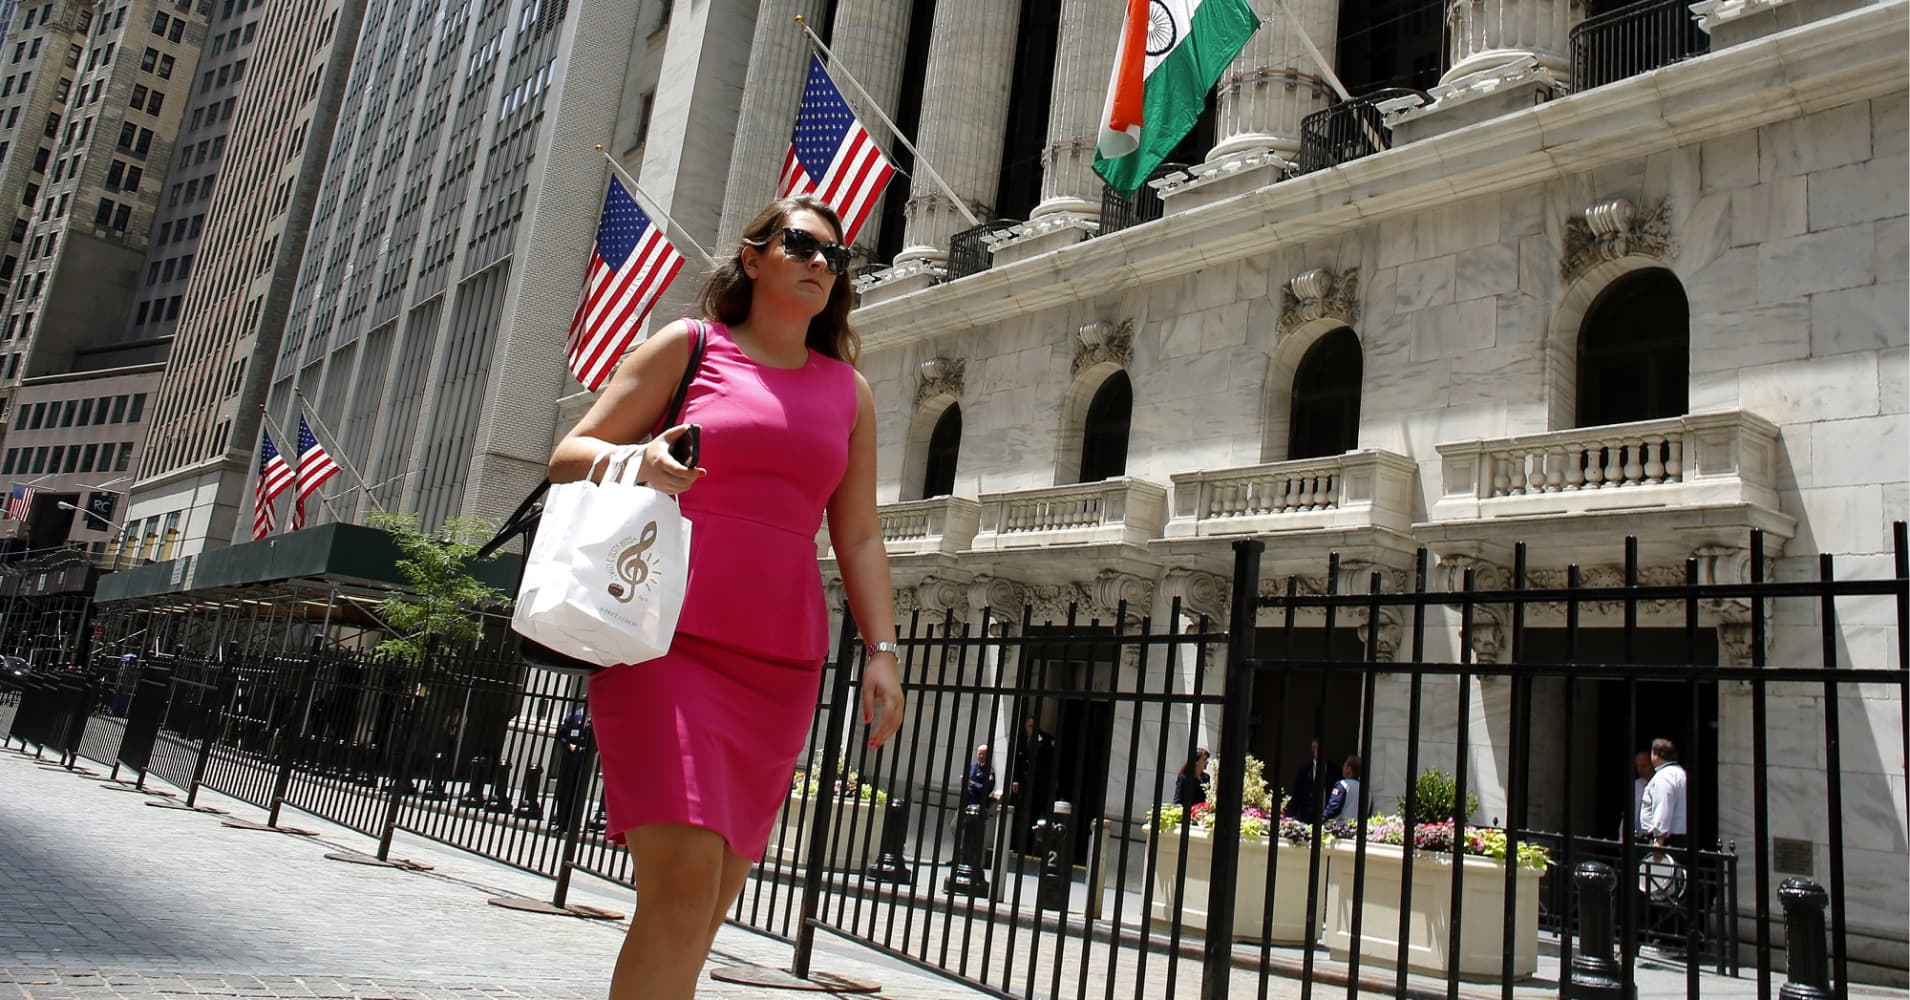 A woman walks by the New York Stock Exchange in New York.